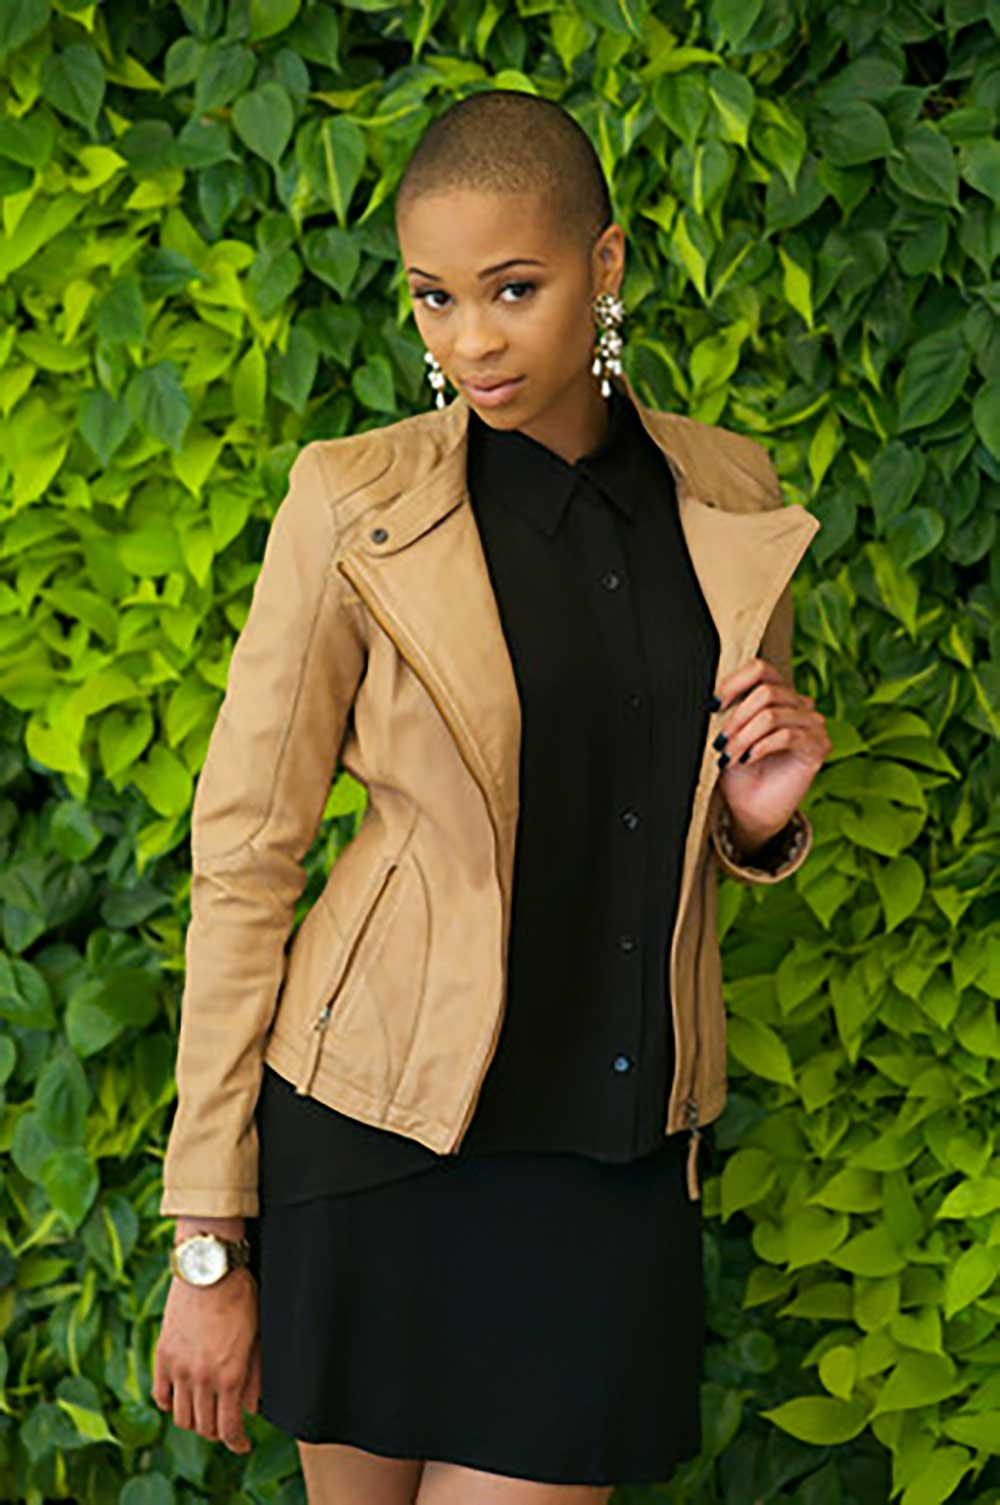 Classico - Neutral Tan Casual Lambskin Leather Jacket